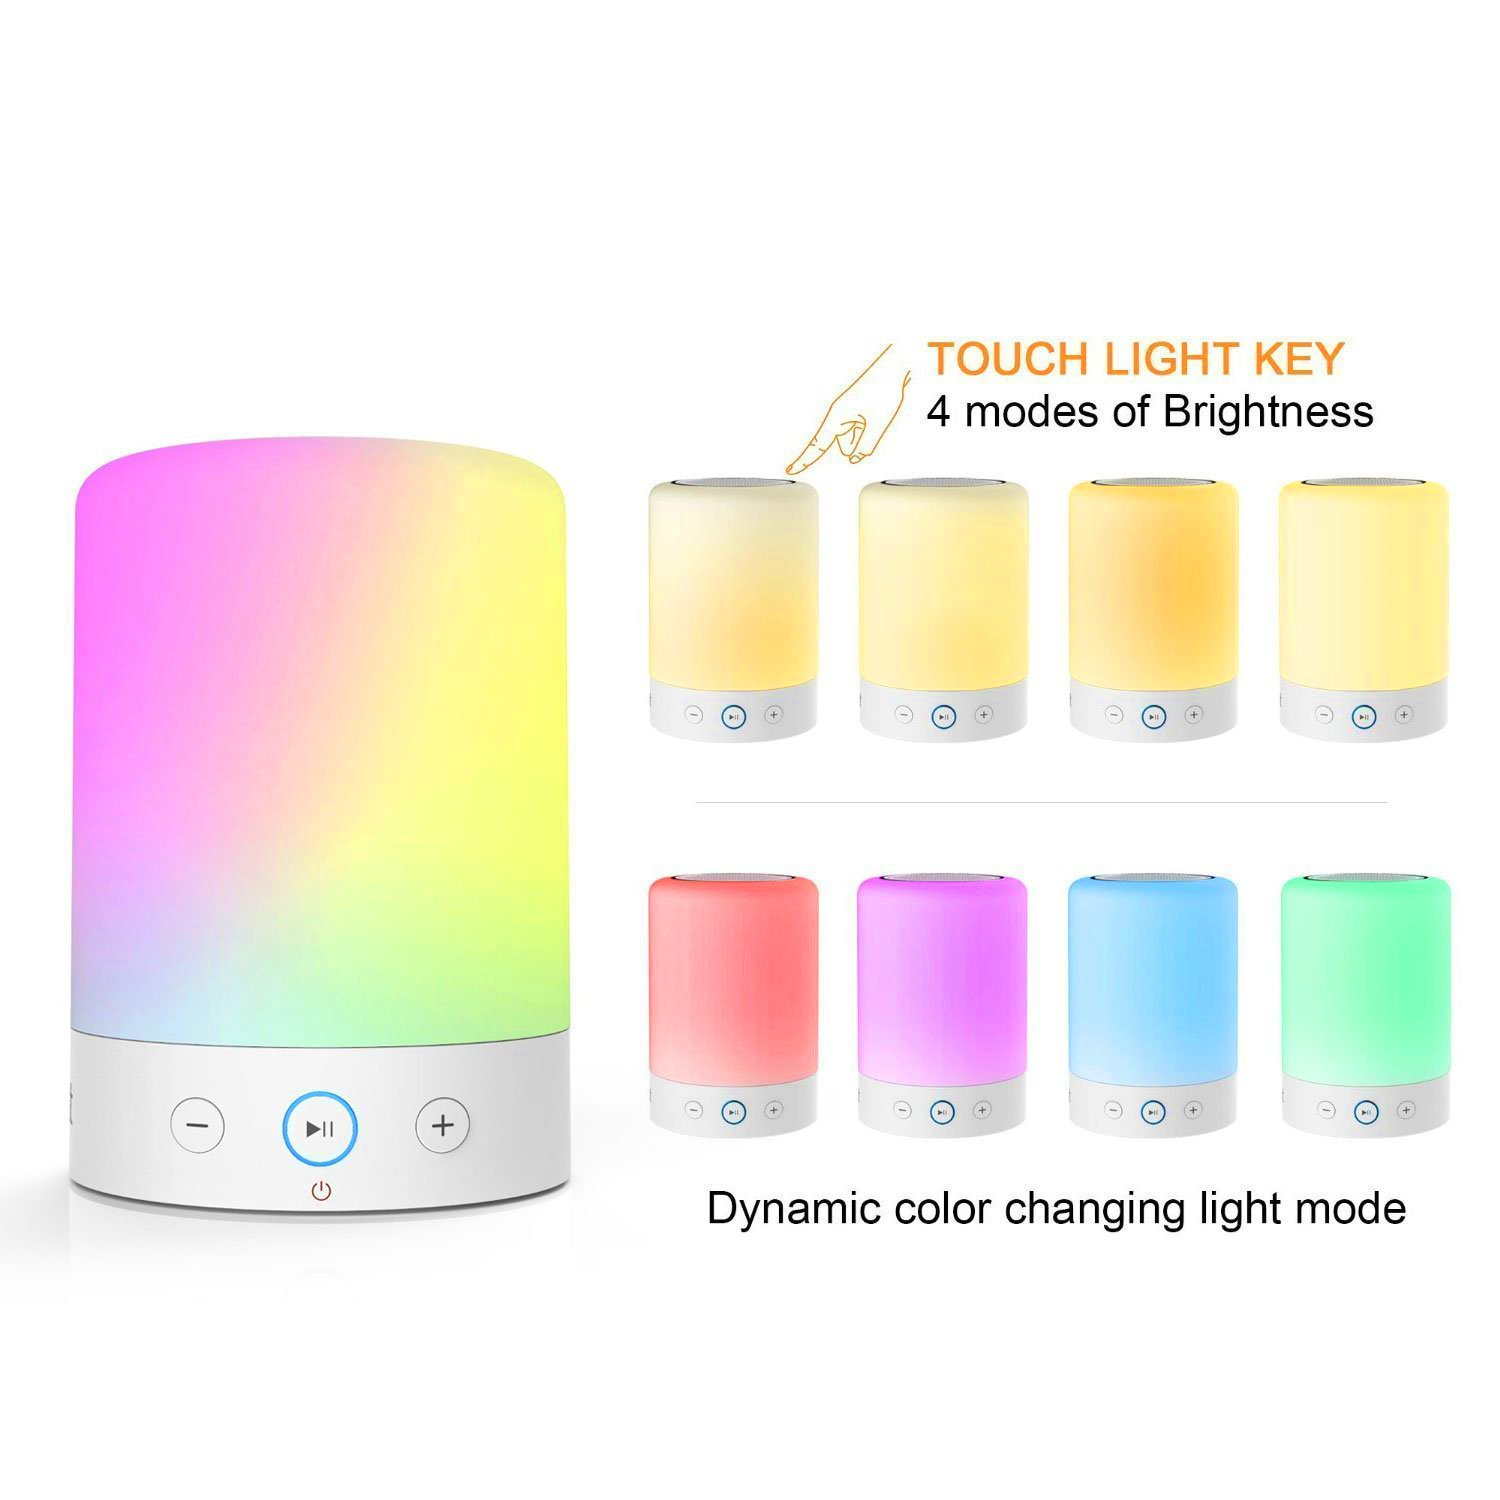 MOXNICE Table Lamp with Bluetooth Speaker Portable Dimmable Night Lights Smart Touch Wireless Speaker Bedside Lamps with Color Changing,Hands-free,Timing Function, Best Gift for Baby Kid Teen Women by MOXNICE (Image #2)